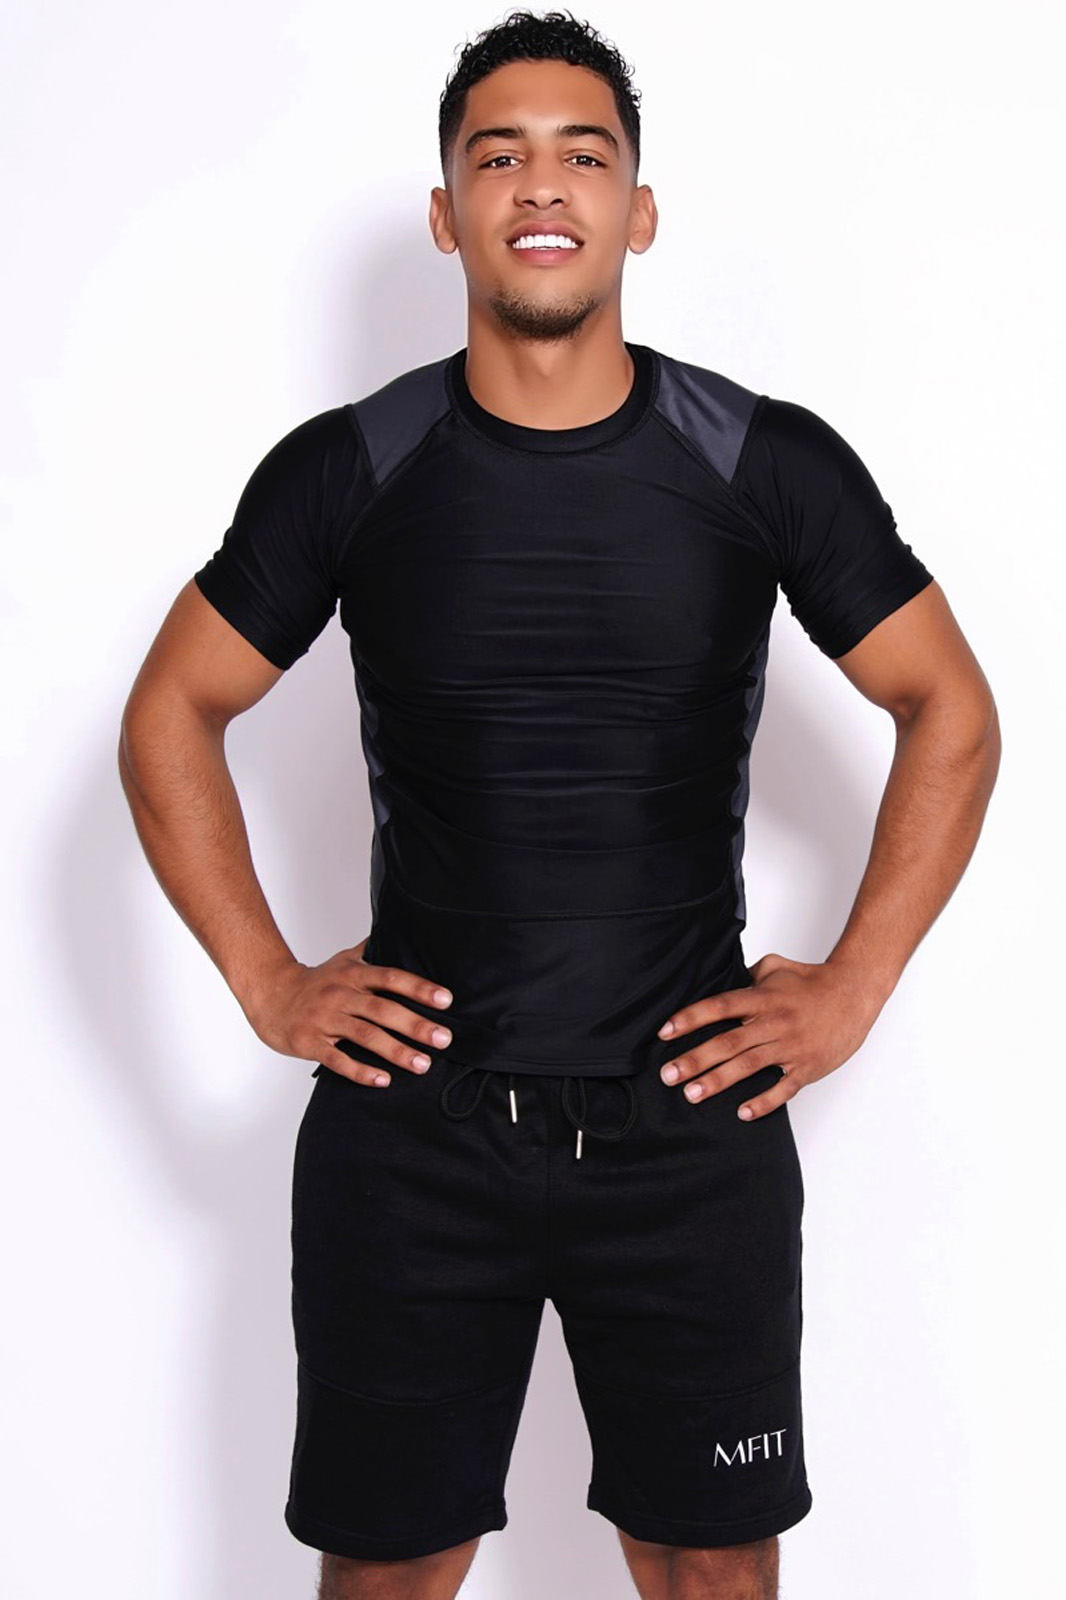 Sport T-shirt Heren Tightly Zwart - Mfit-1